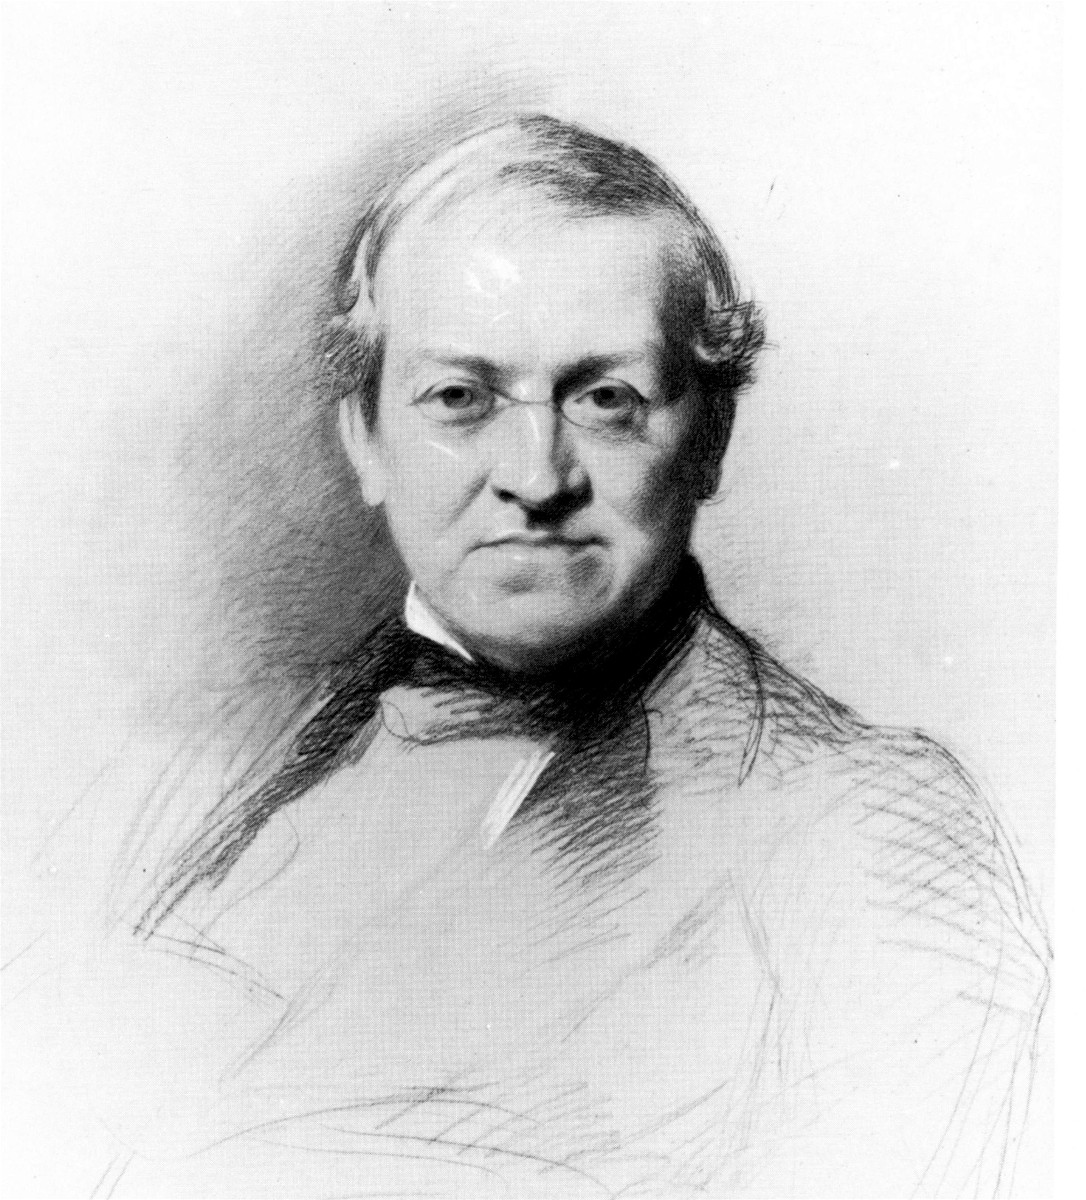 Sir Charles Wheatstone, 1868